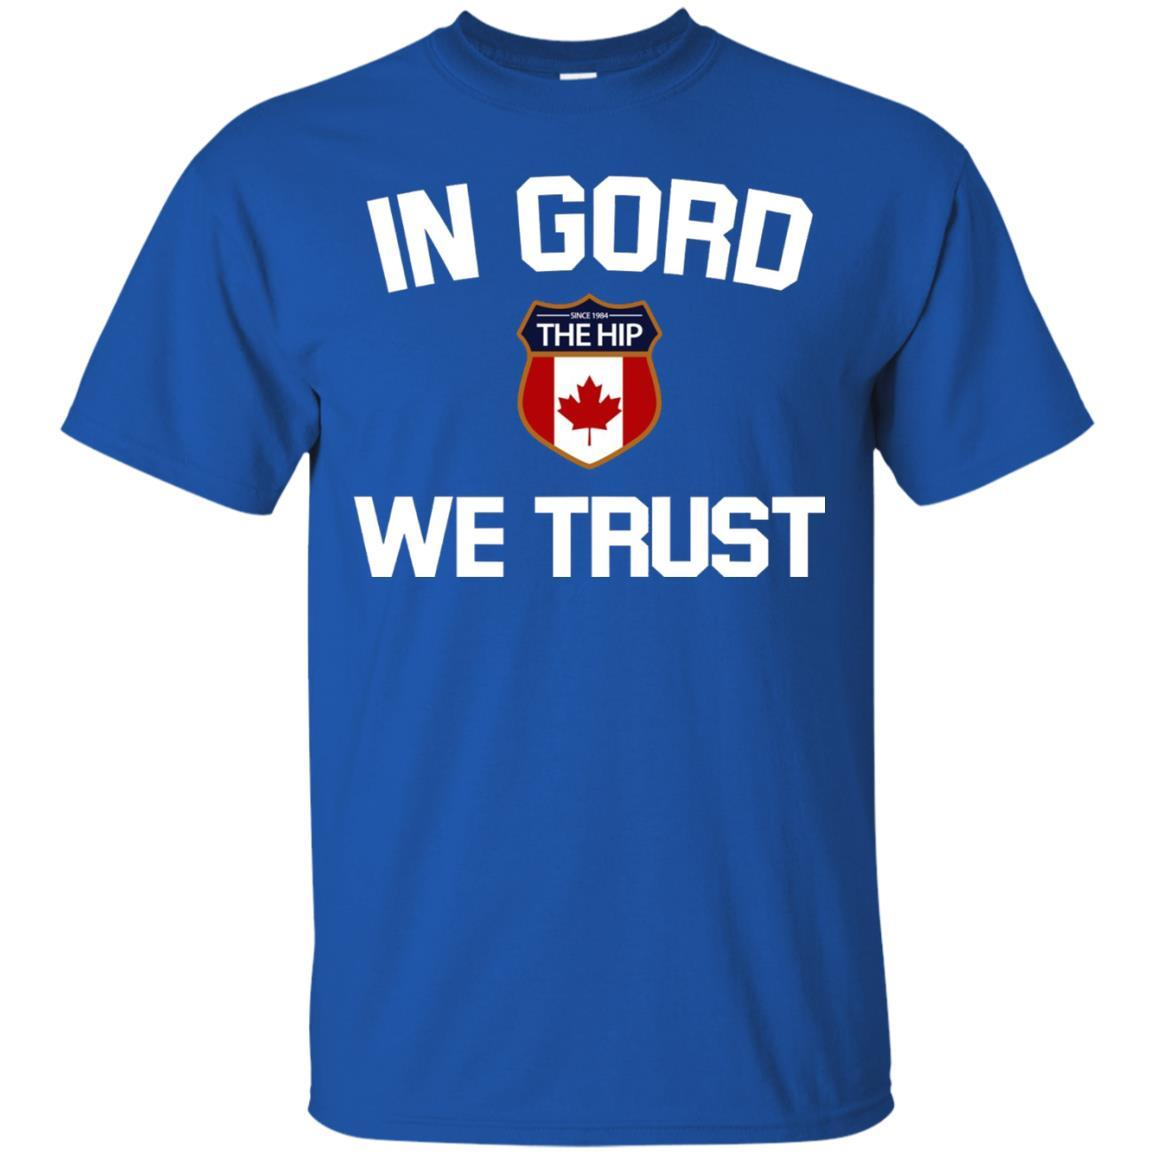 In G-O-R-D We Trust with Emble T-Shirt